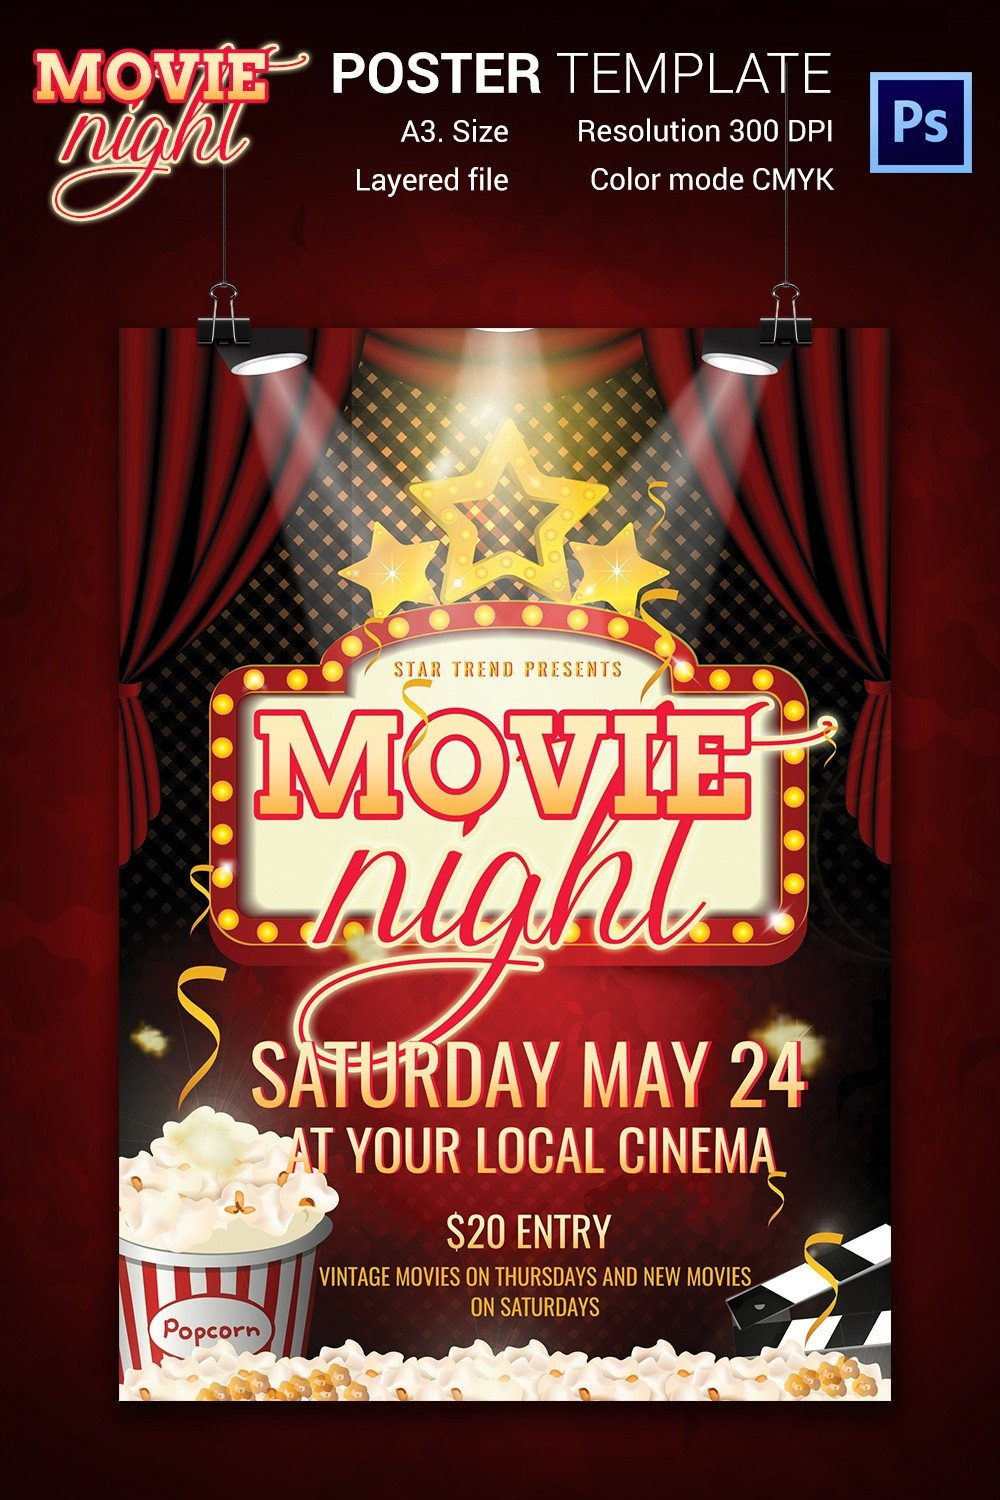 Movie Night Flyer Template Movie Night Flyer Template 25 Free Jpg Psd format